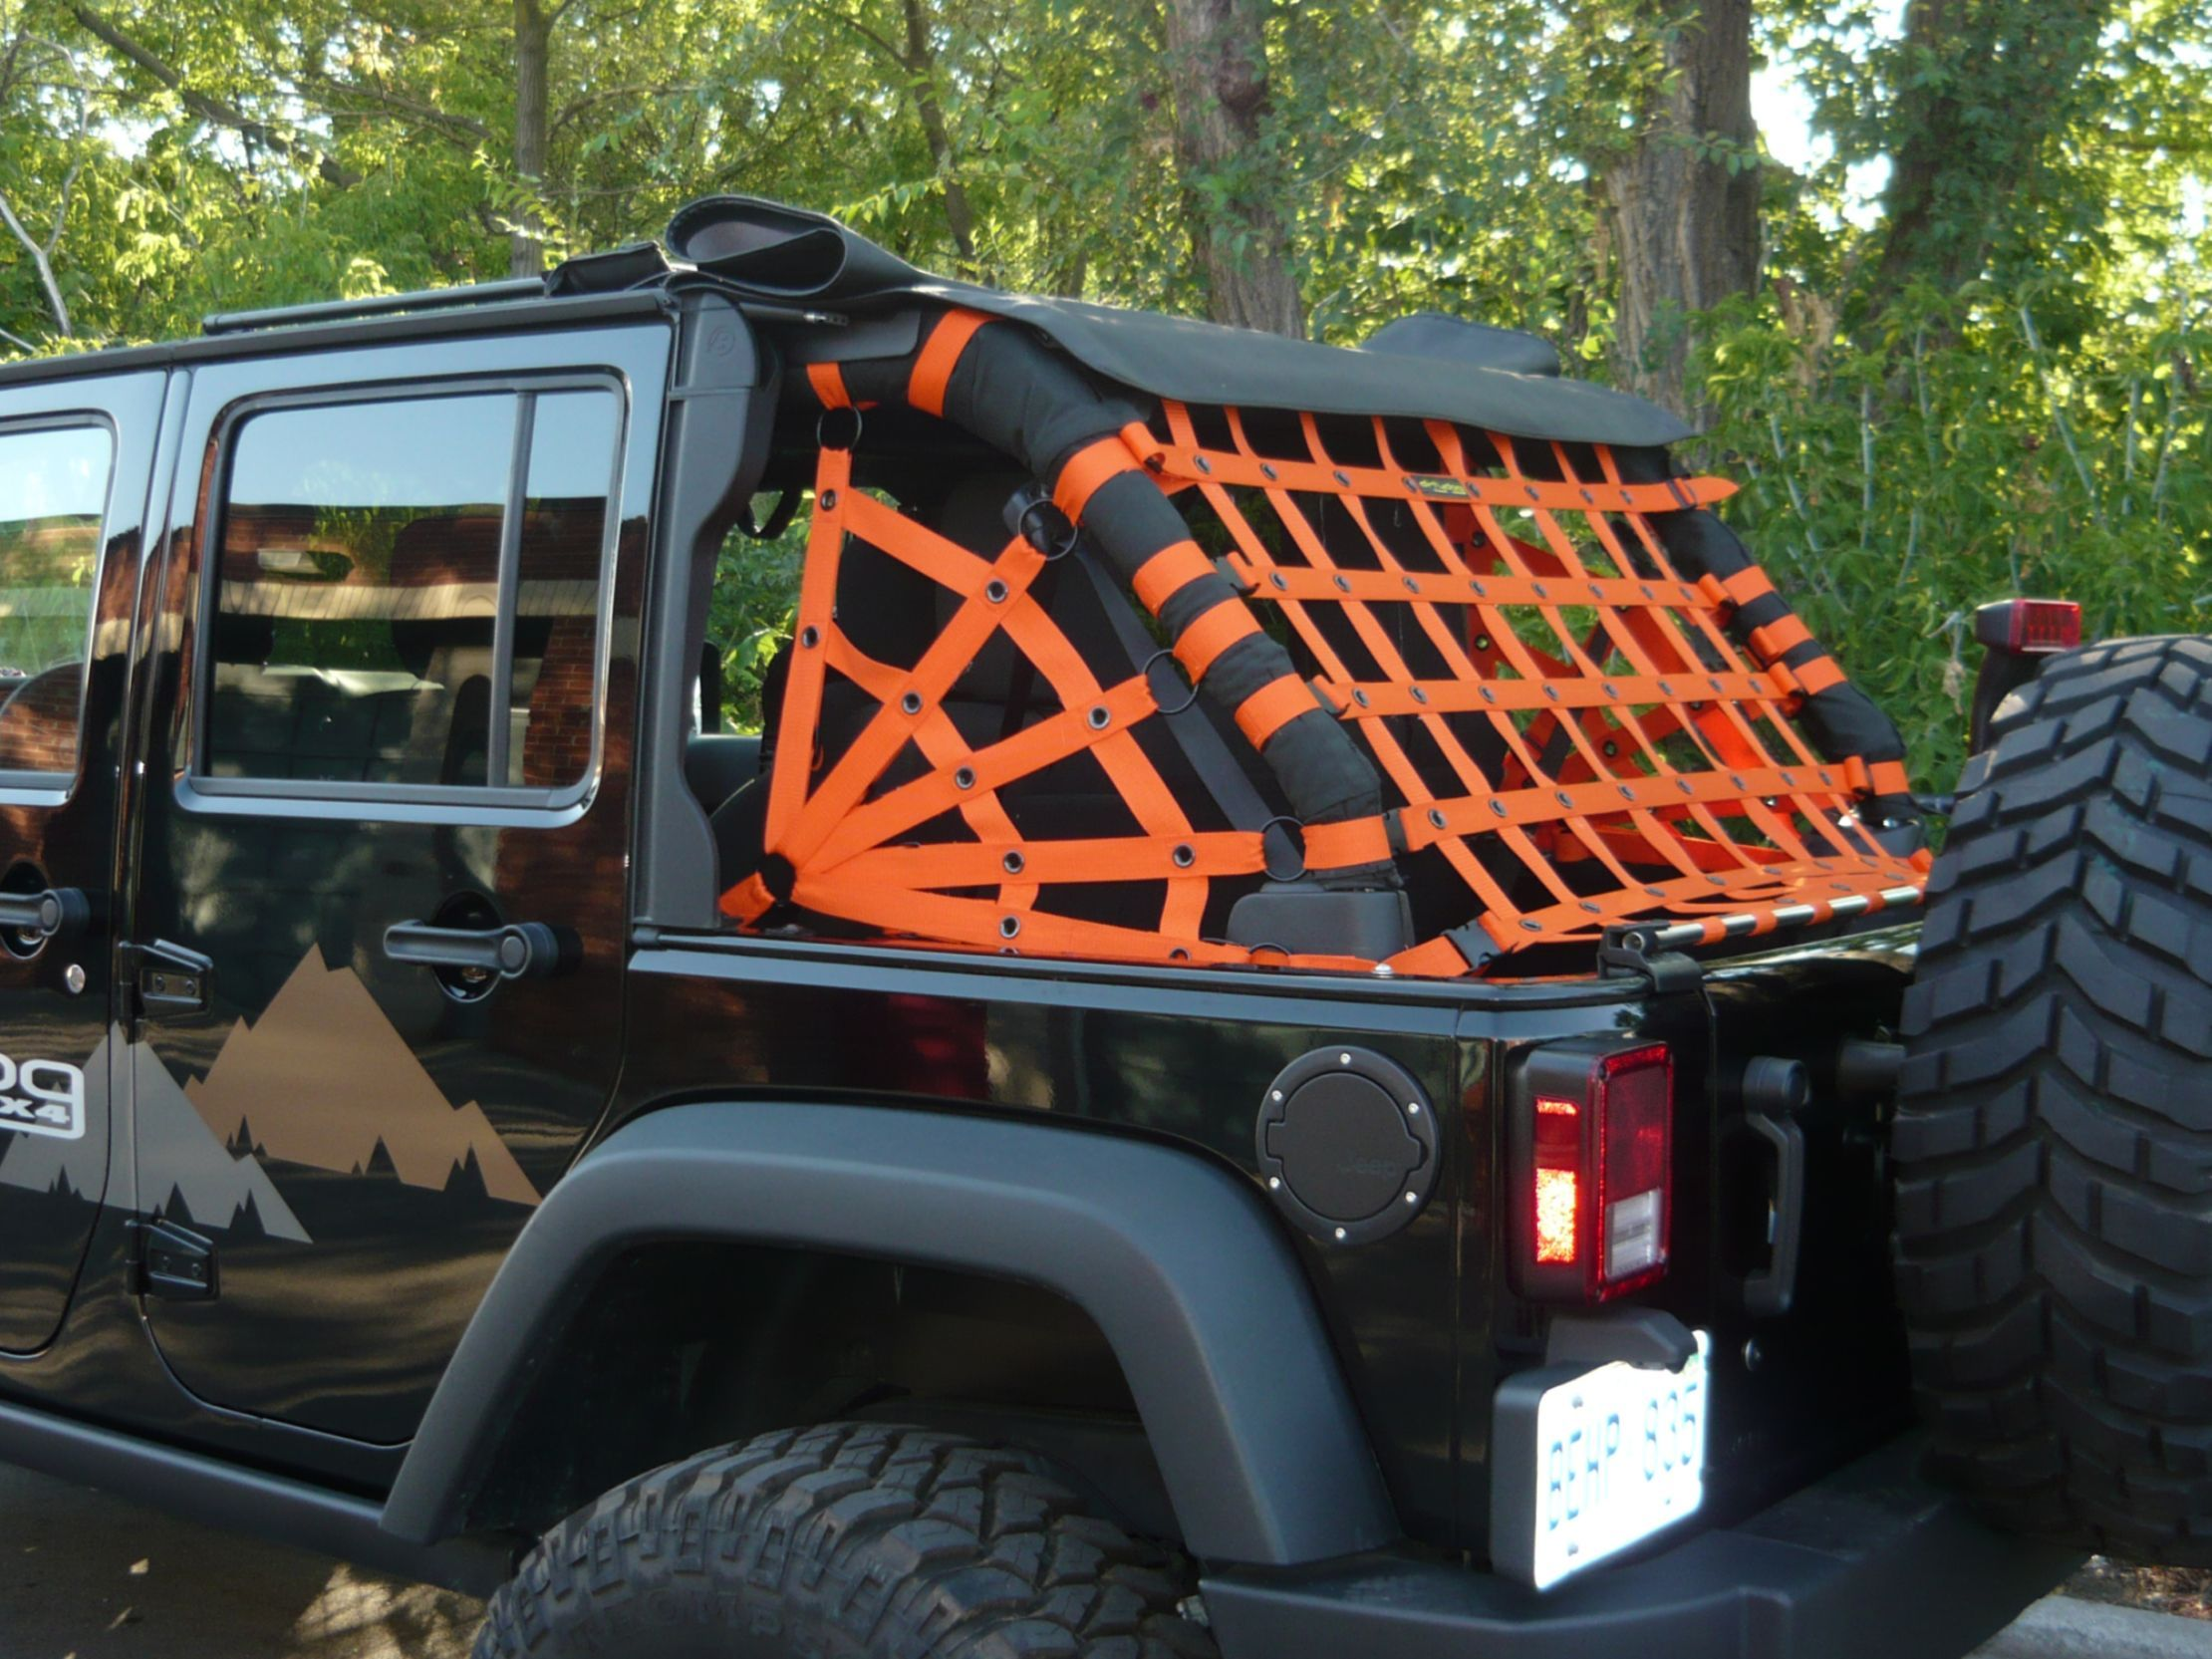 Dirtydog 4x4 Jeep Accessories Spider Netting For Jeep Wrangler Jk Unlimited 3pc Kit 2007 Up Rear Colors Orange Jeep Jeep Jeep Wrangler Jk